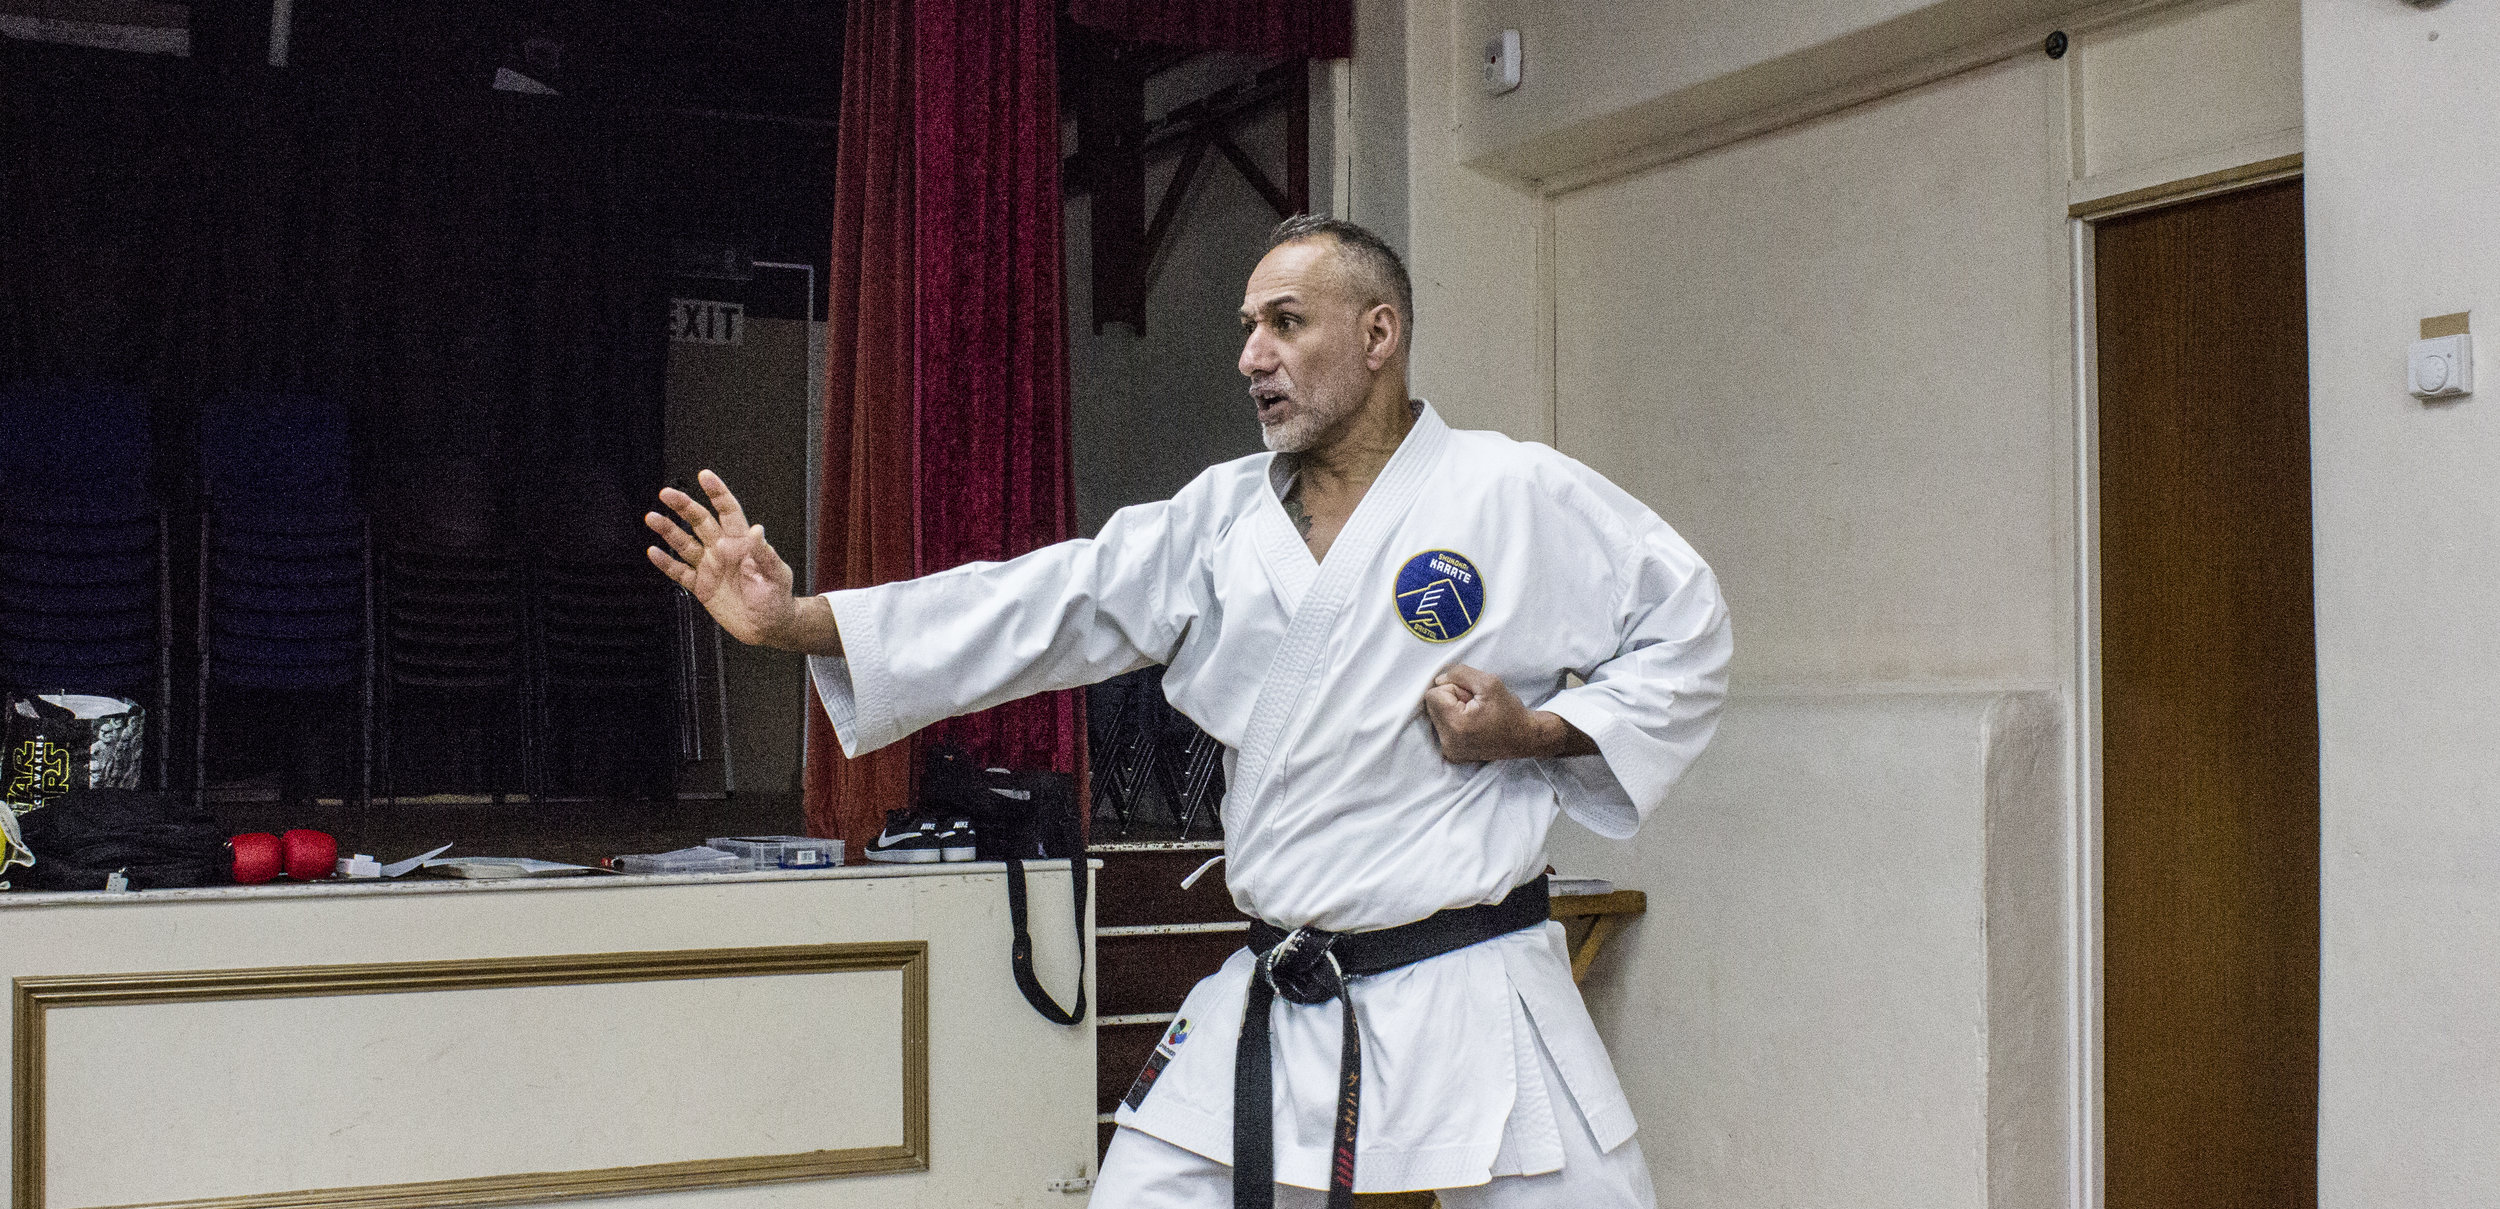 A combination demonstration at our St Saviours dojo in Frampton Cotterall.